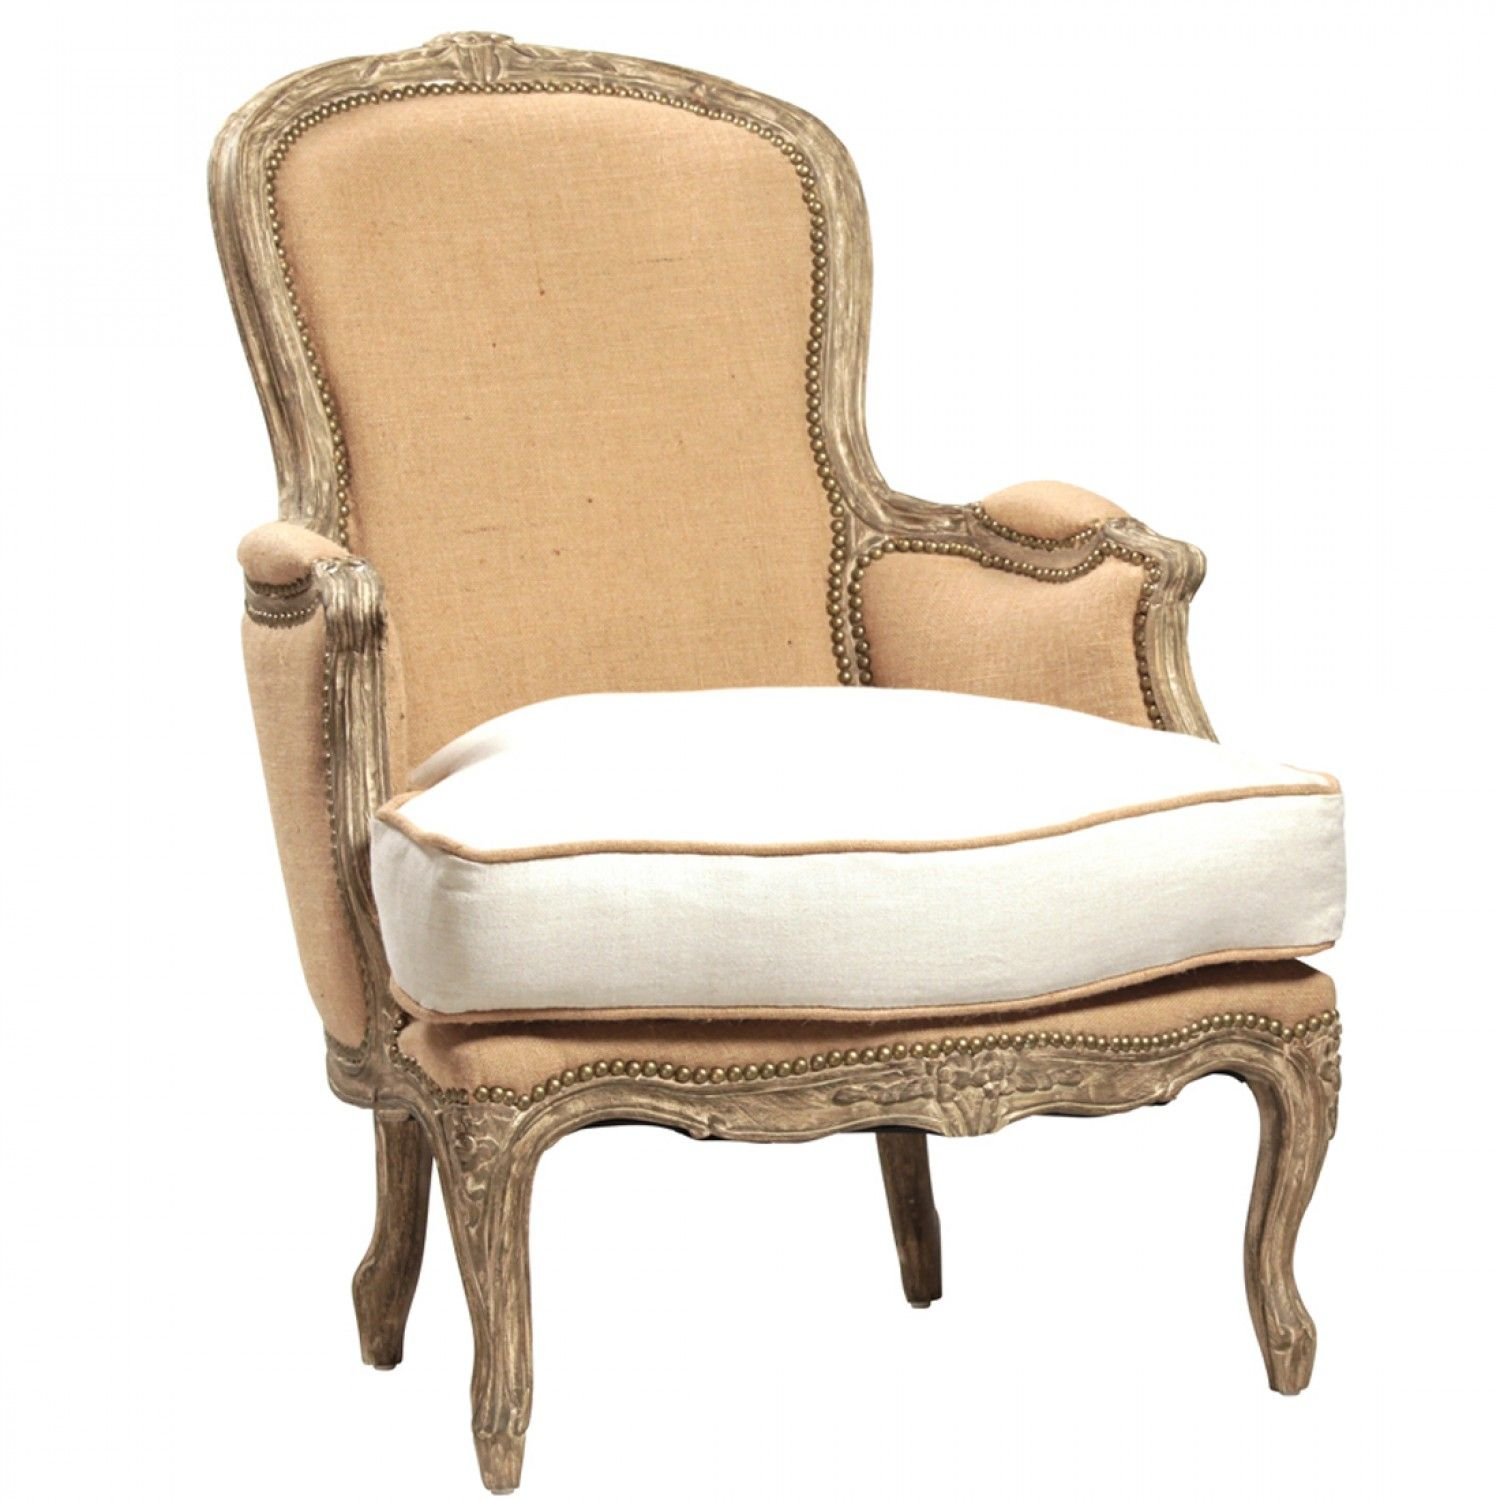 Bergere chair french rococo - French King Louis Dante Bergere Chair 762 00 Whitedove Shabbychic Homedecor